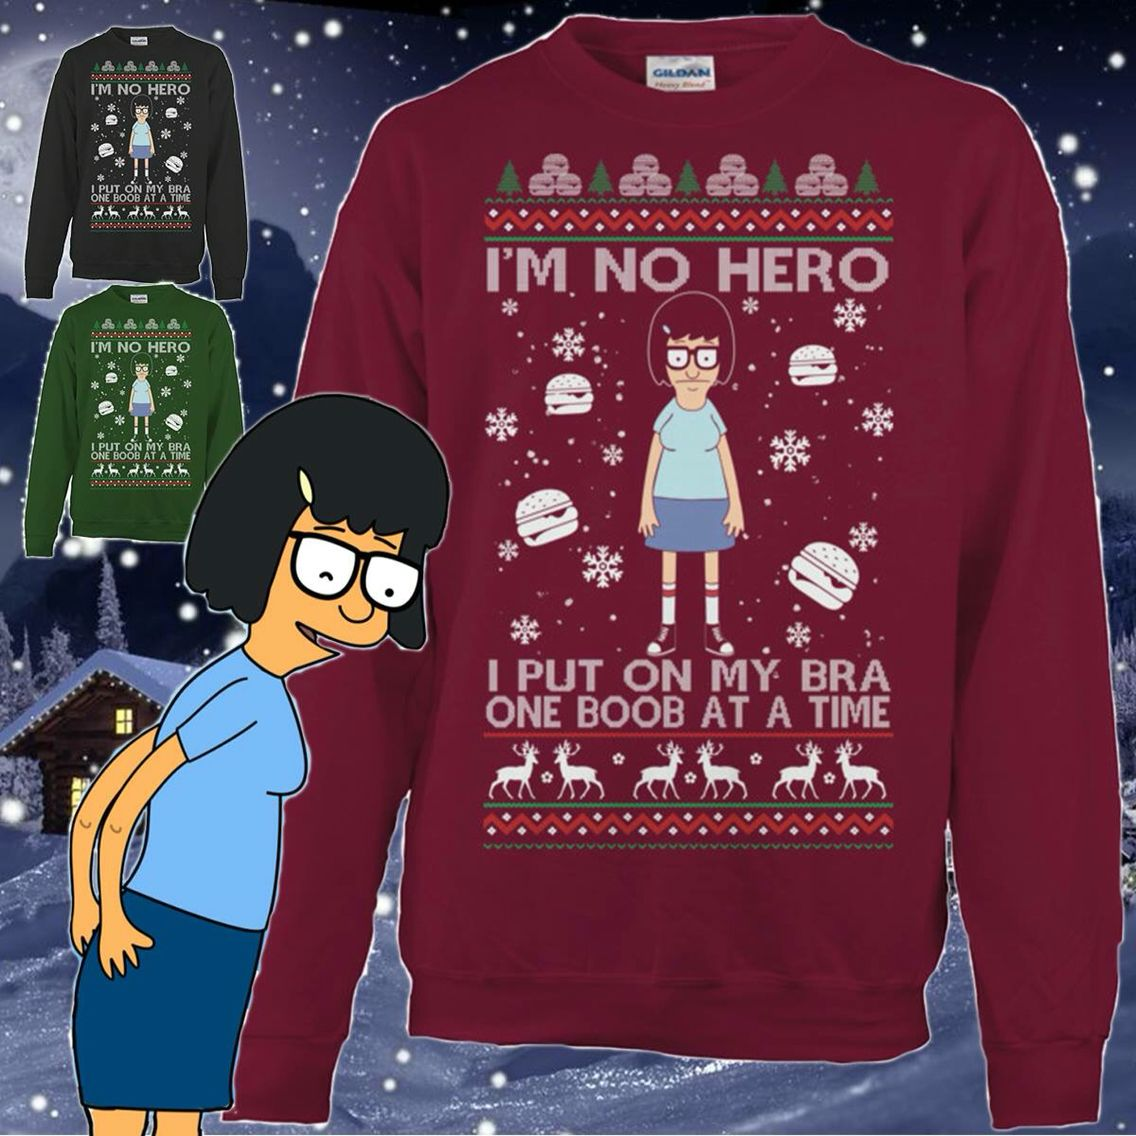 Tina Belcher ugly Christmas sweater | Cute Clothes/Accessories ...